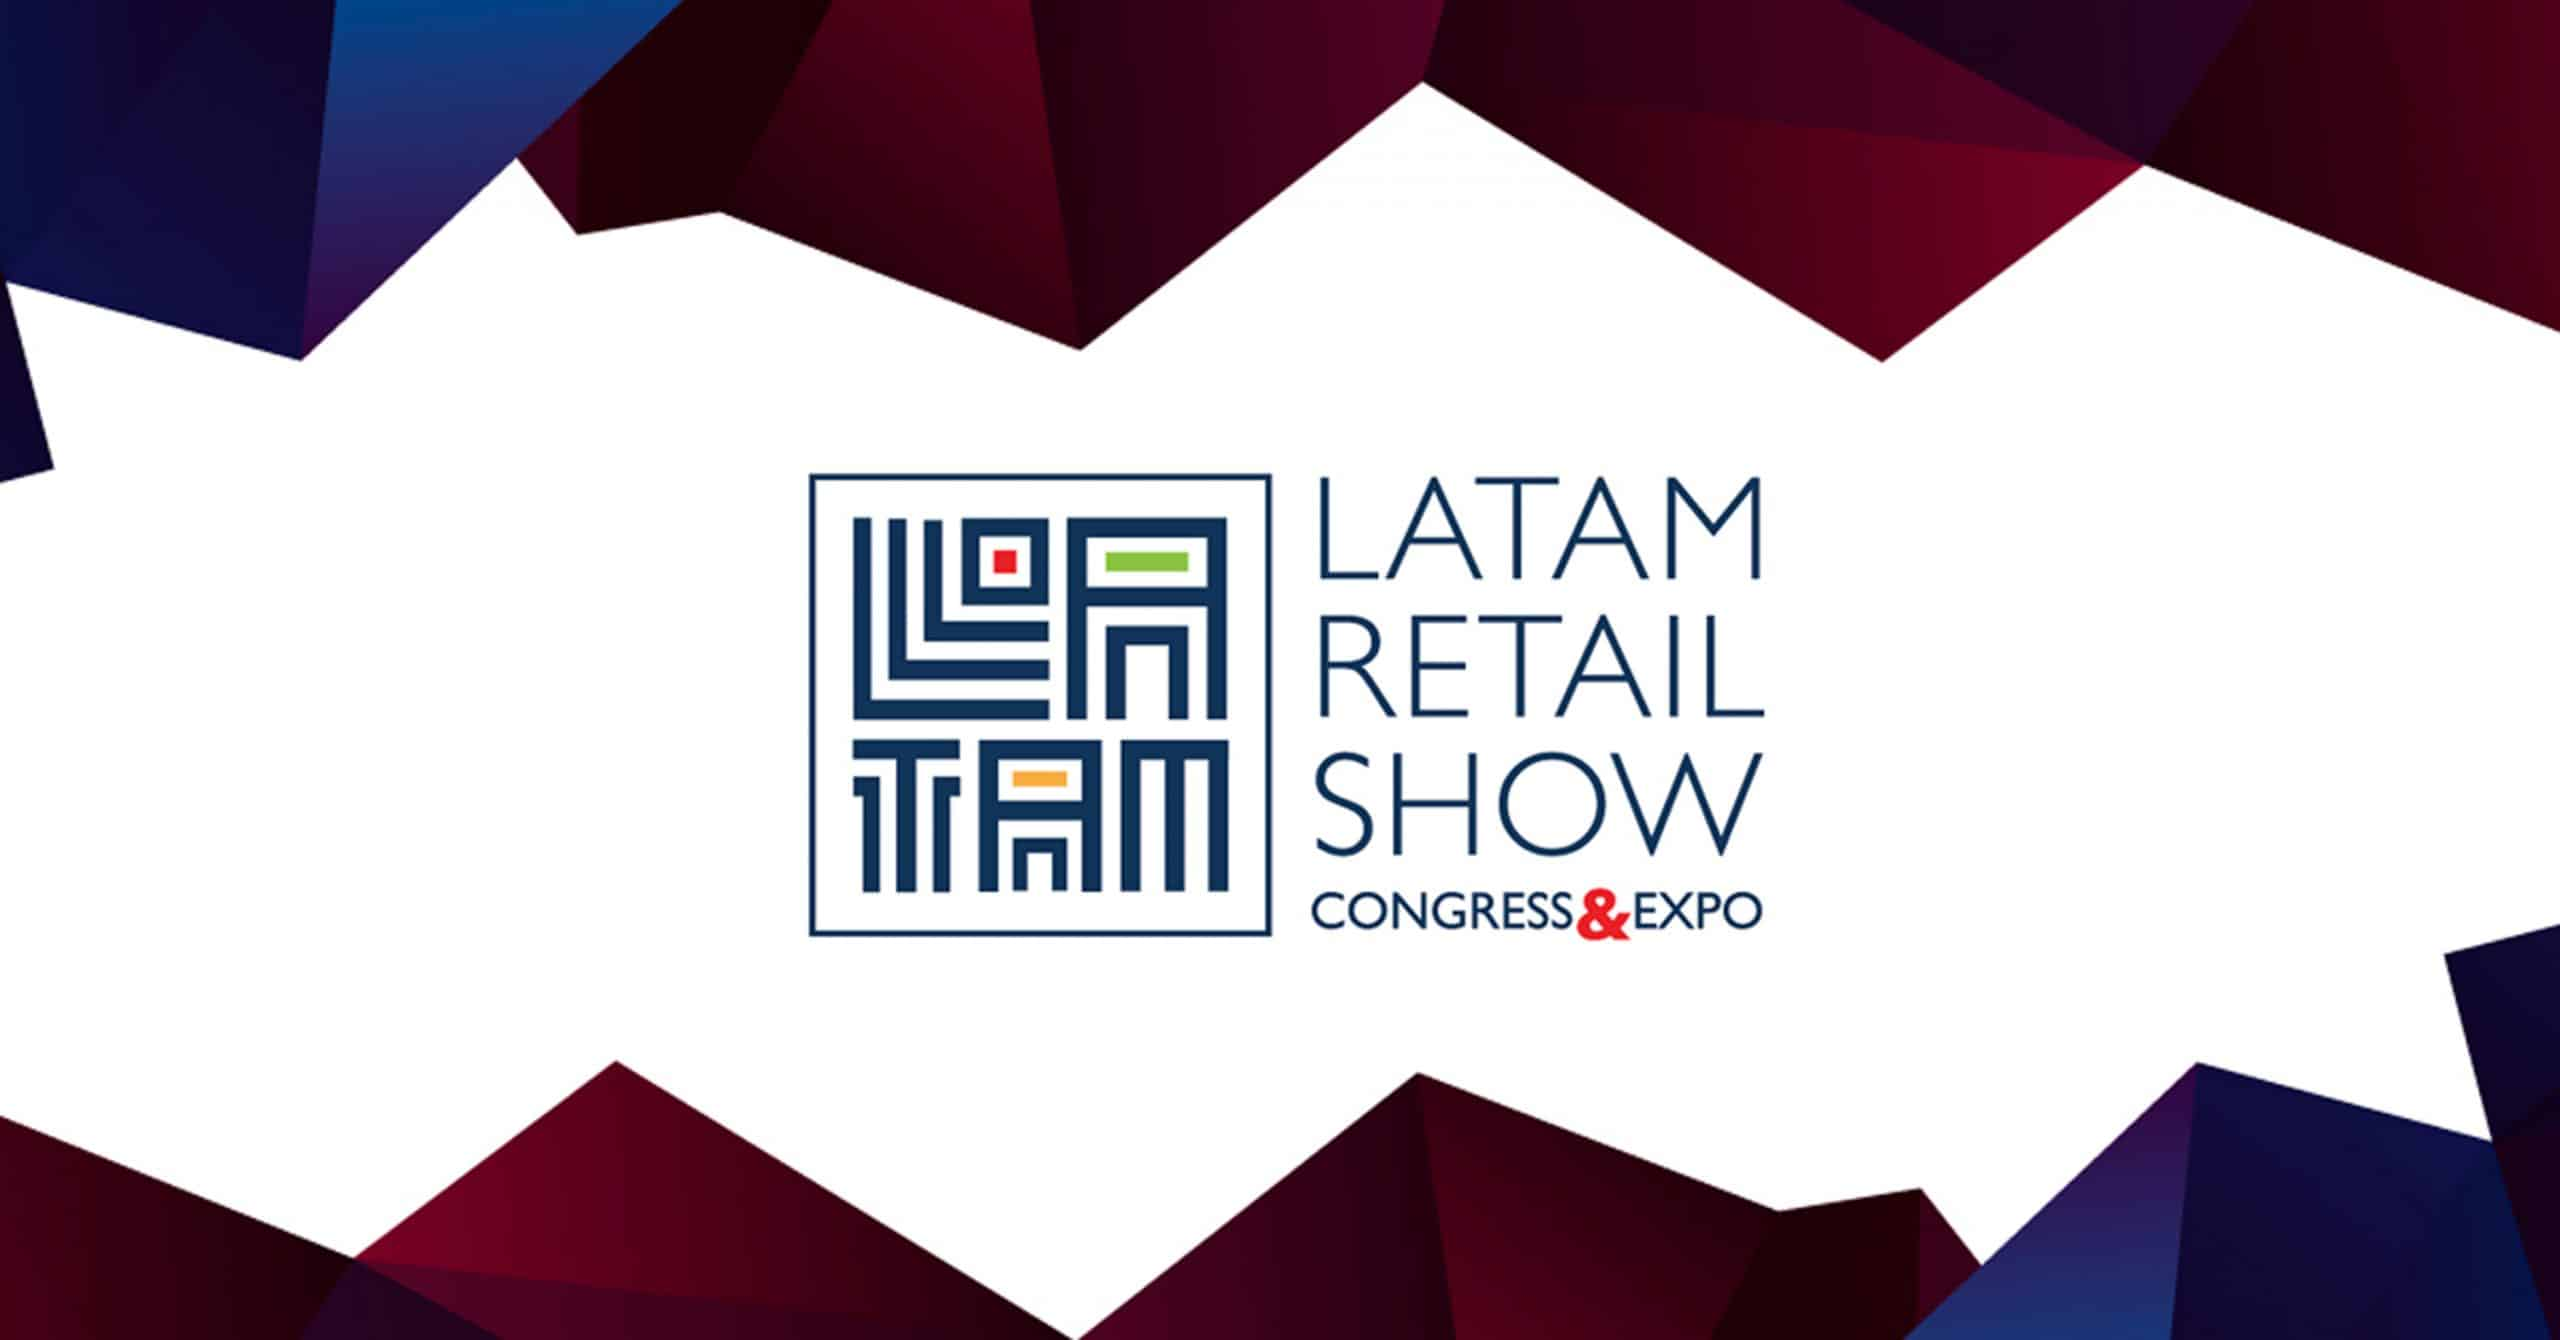 SISQUAL® will be present in the 5th edition of LATAM Retail Show